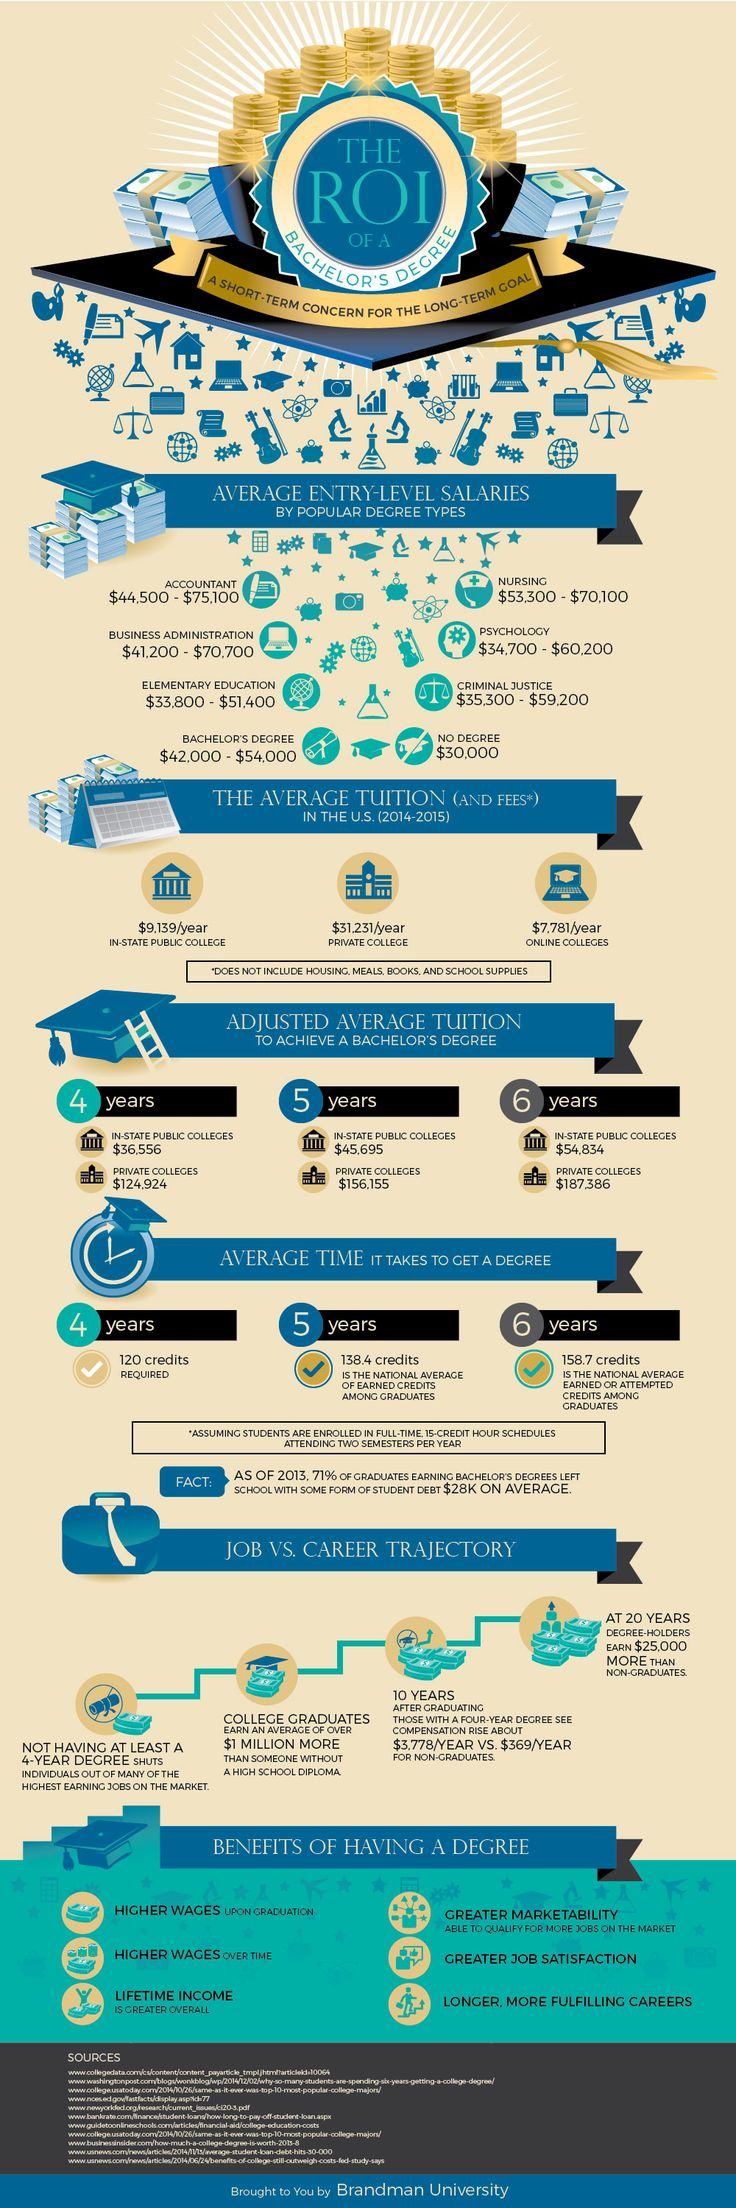 The ROI of a Bachelor's Degree #infographic #Education